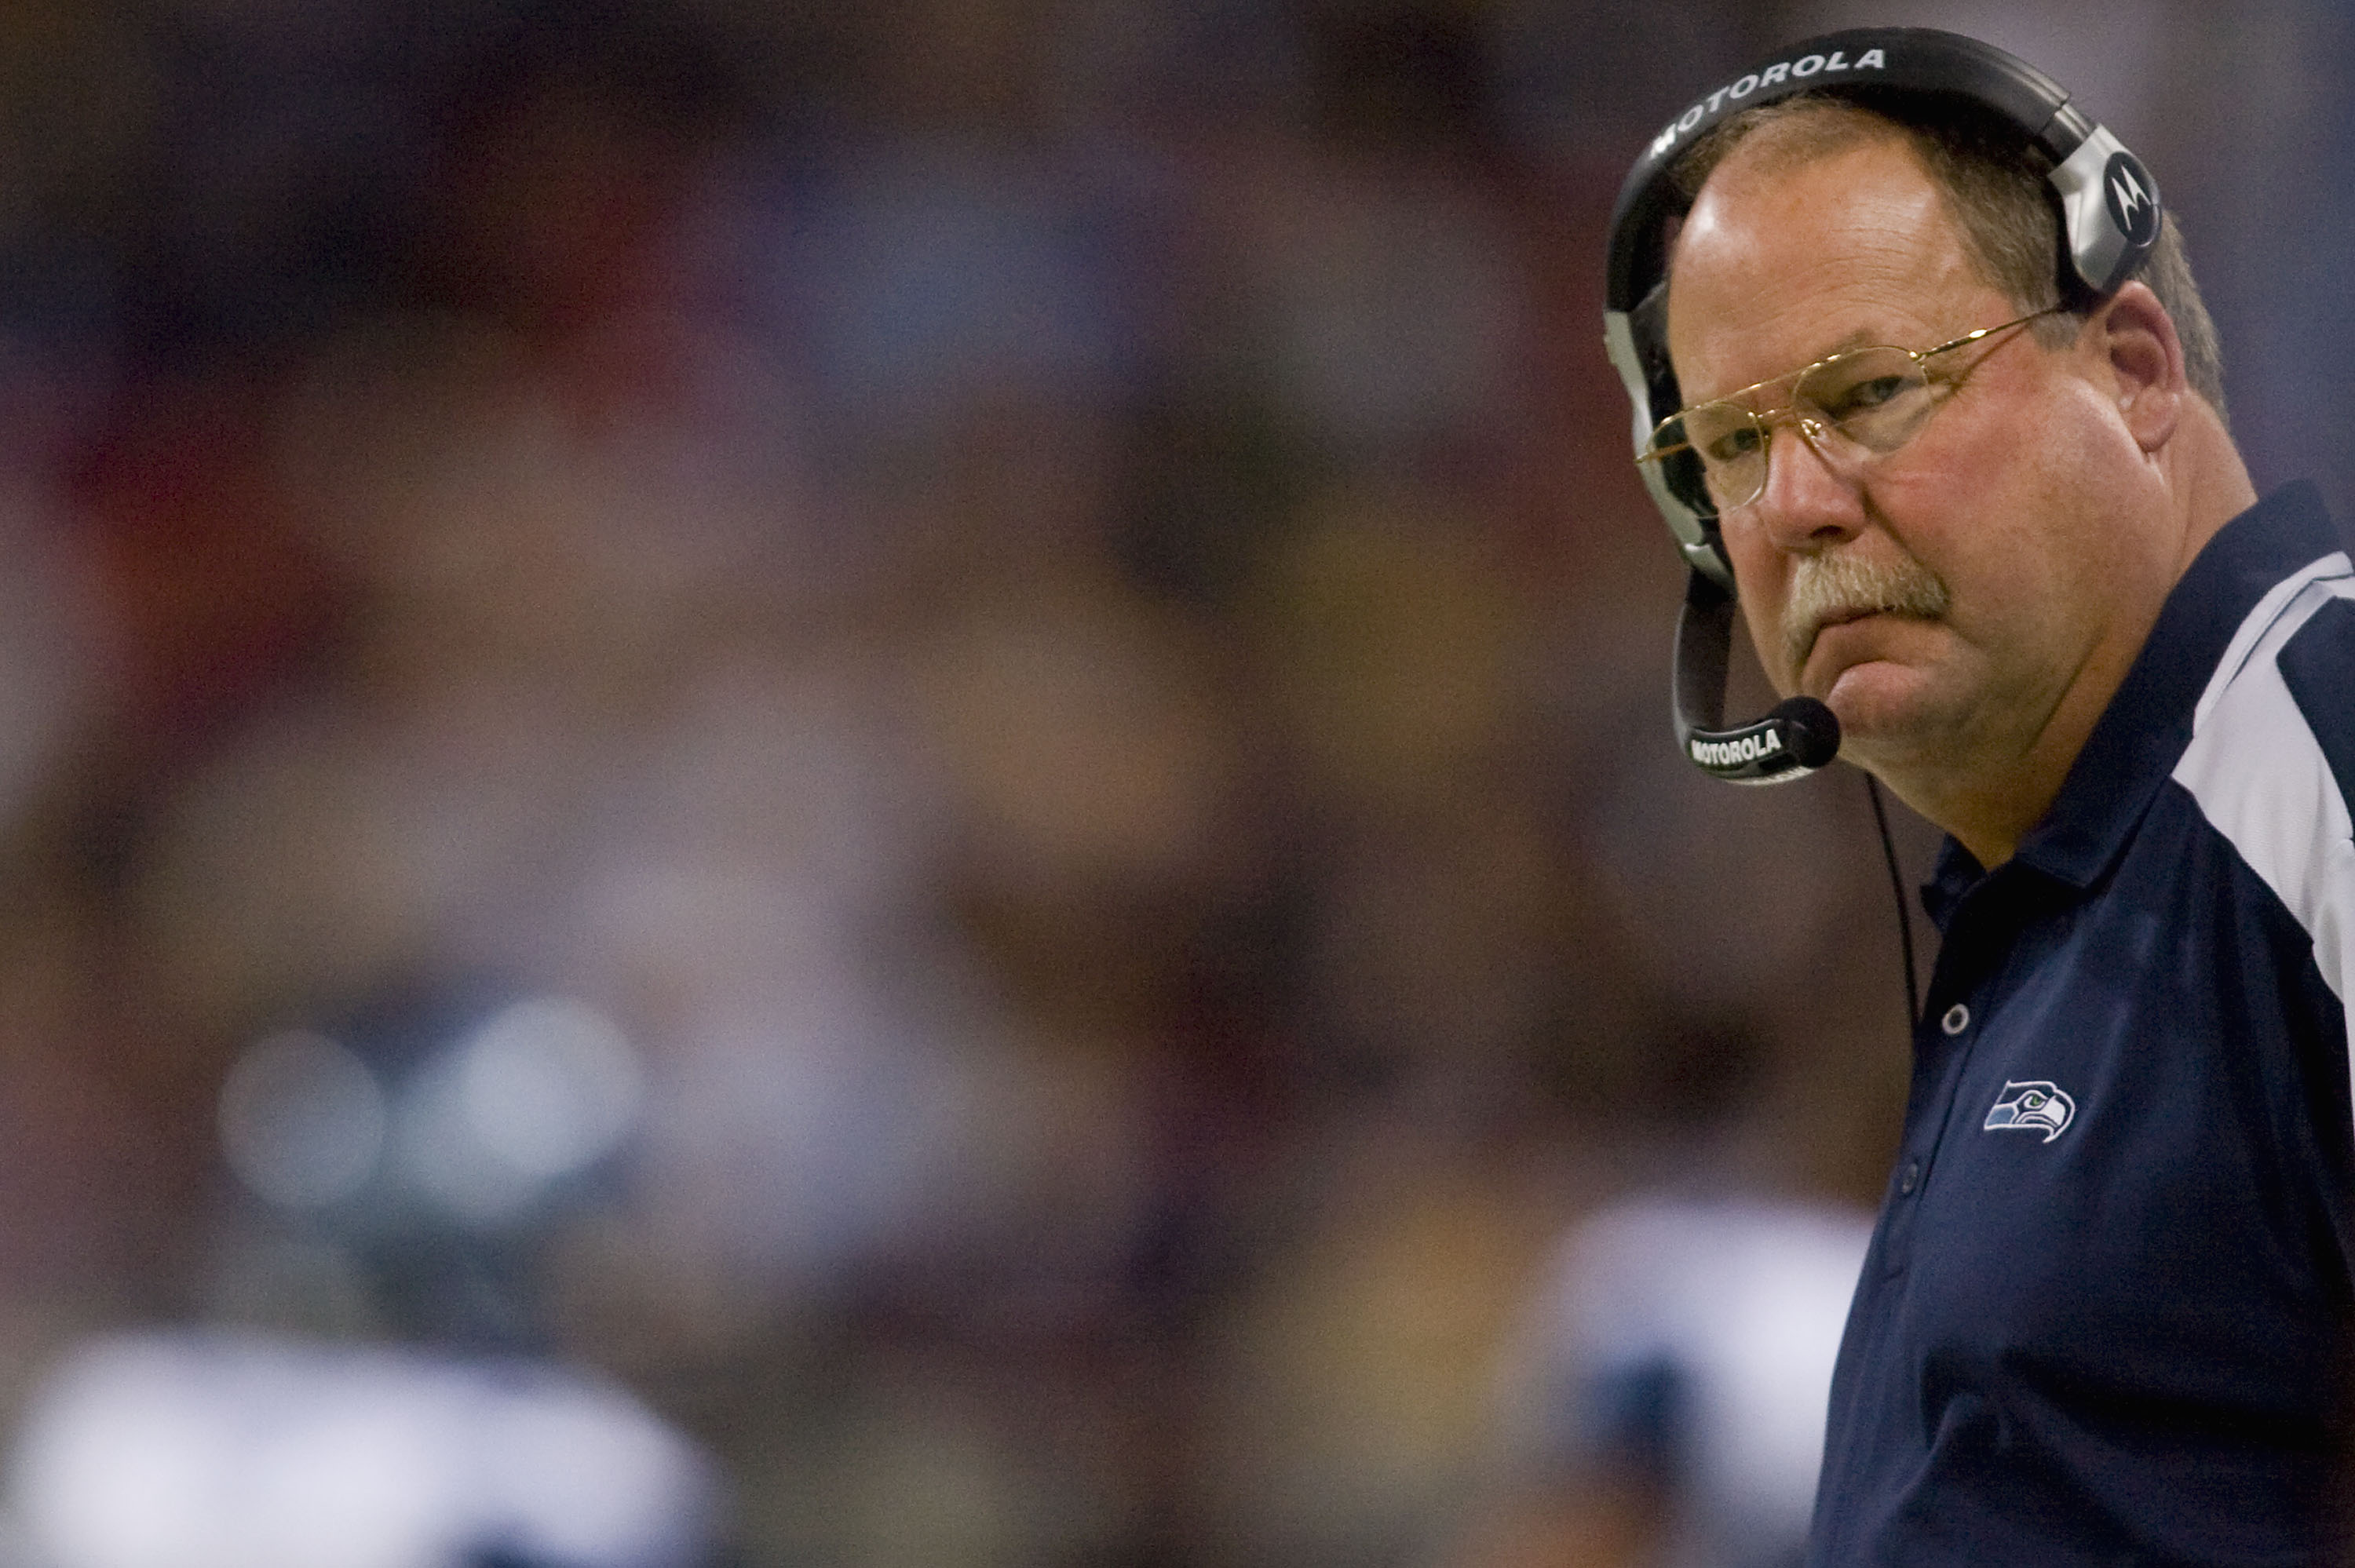 ST. LOUIS, MO - DECEMBER 14: Head coach Mike Holmgren of the Seattle Seahawks watches his team play against the St. Louis Rams at the Edward Jones Dome on December 14, 2008 in St. Louis, Missouri.  The Seahawks beat the Rams 23-20.  (Photo by Dilip Vishwa